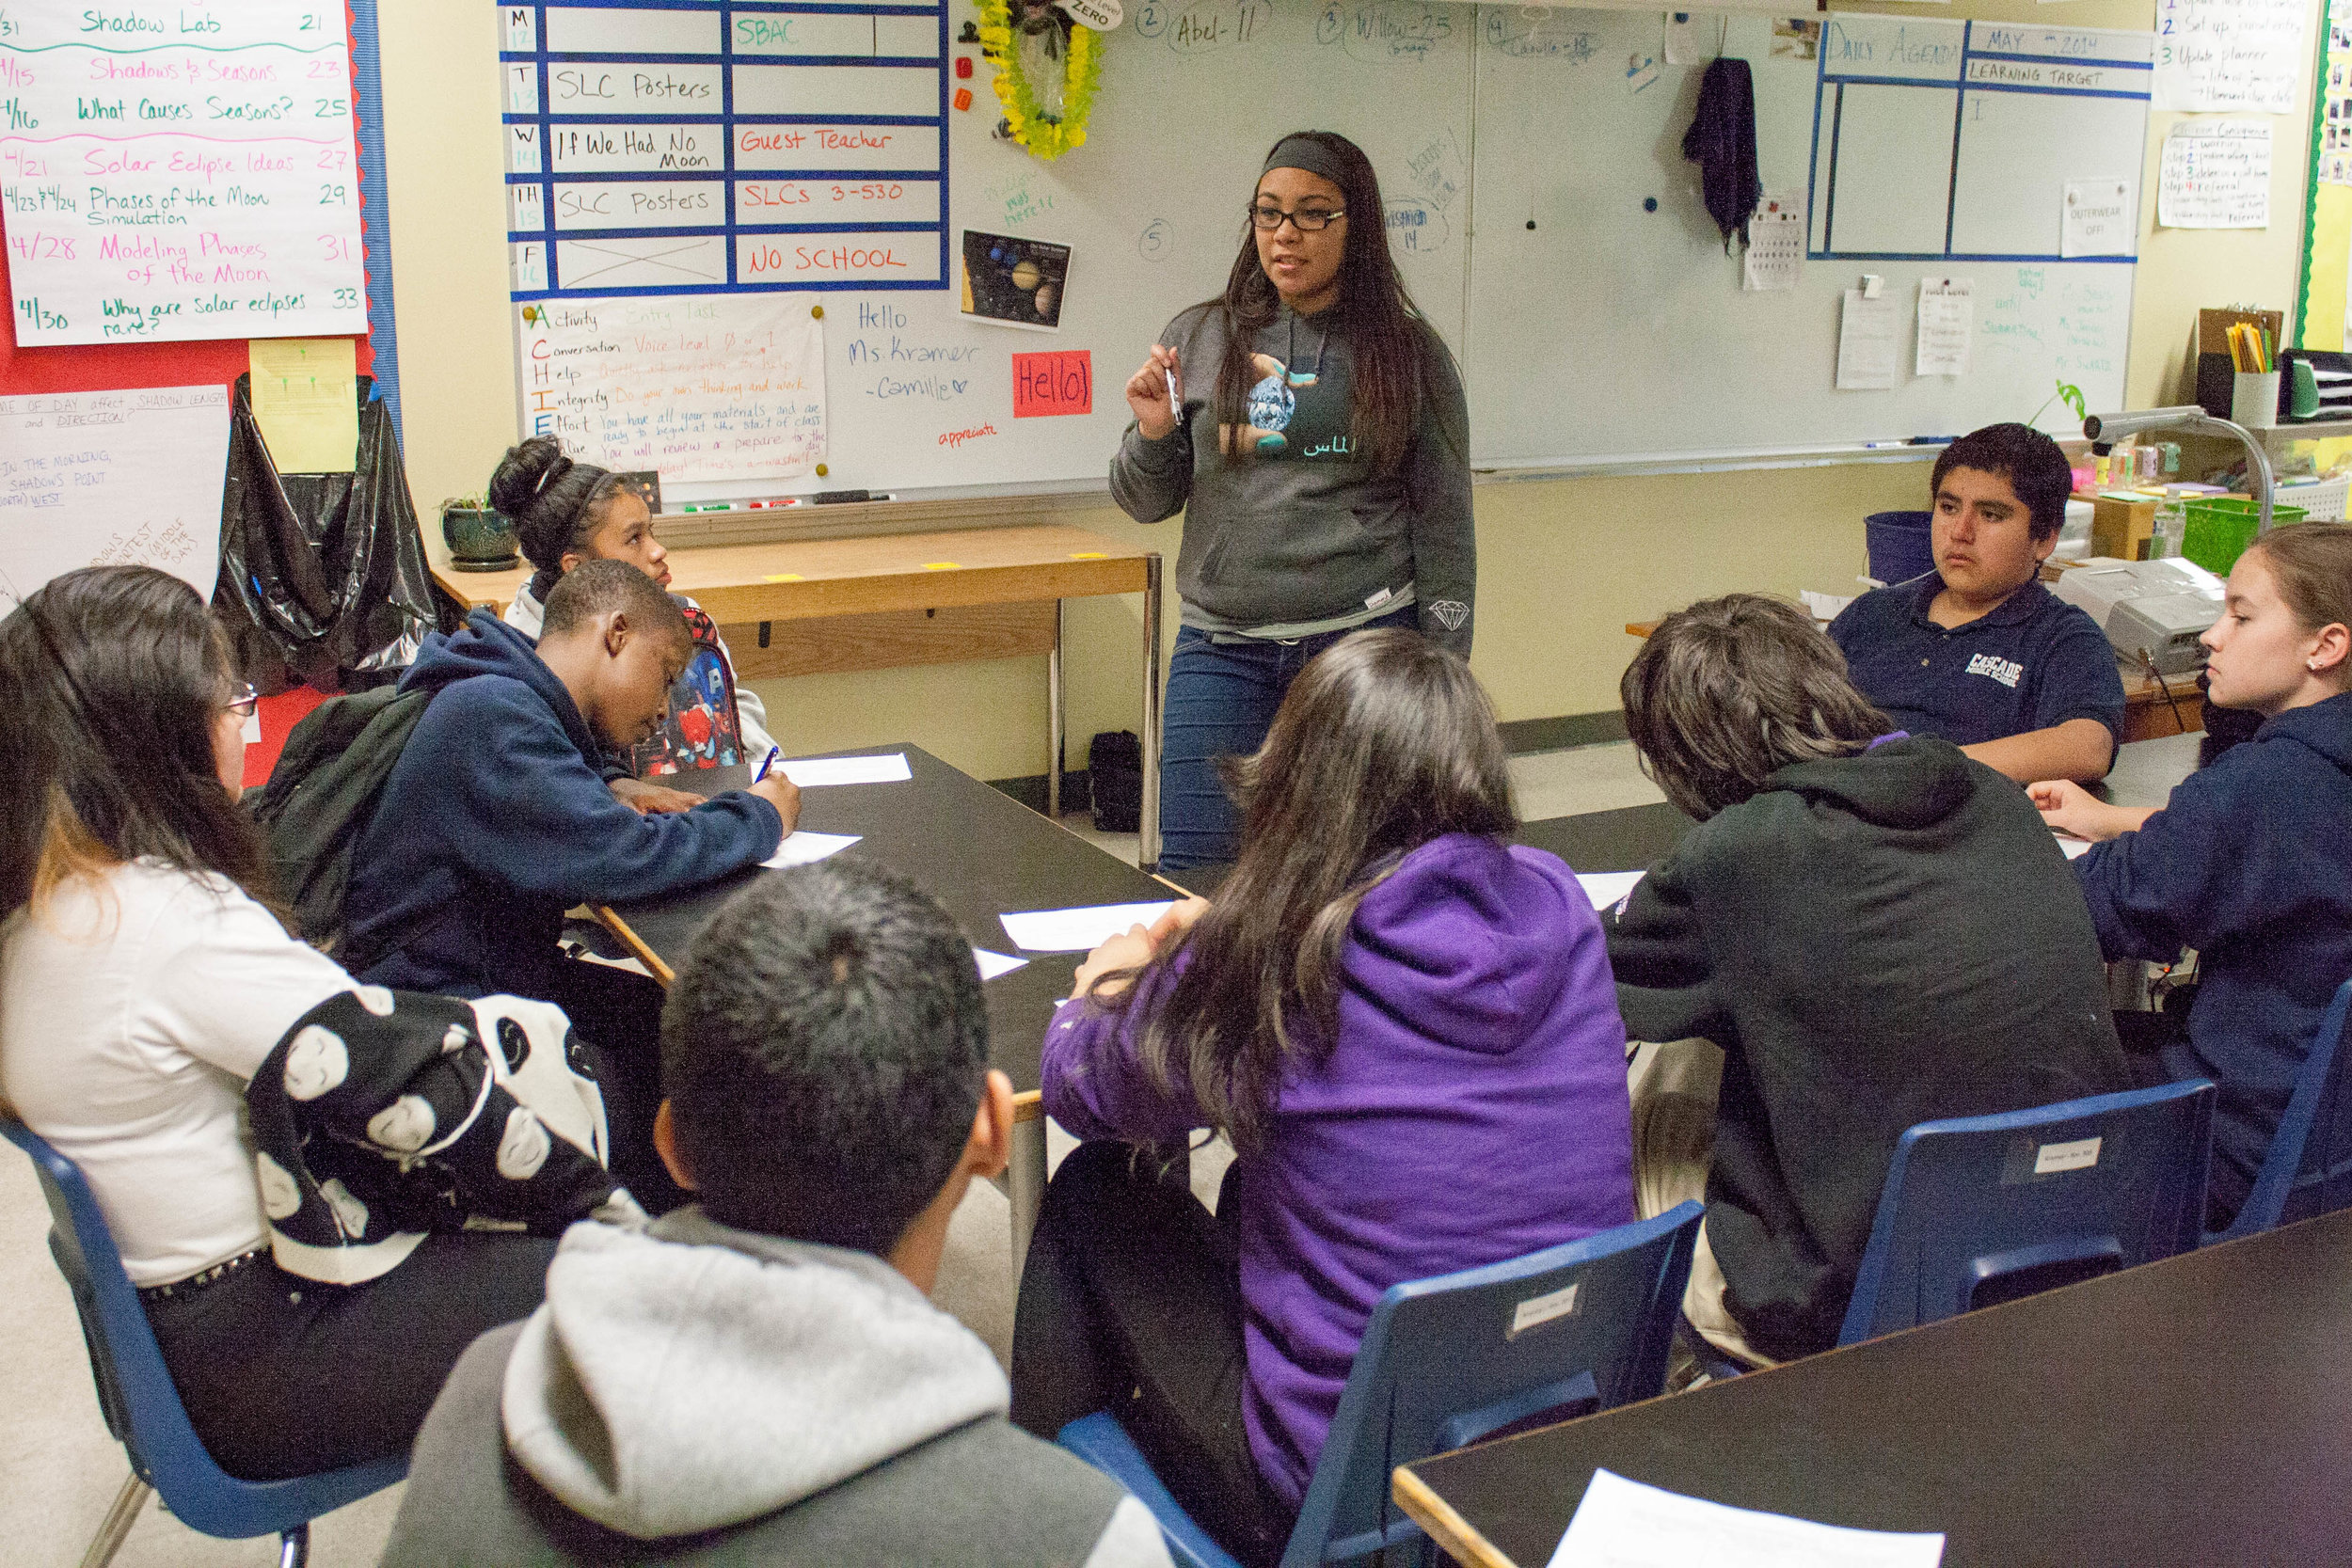 """Marisol is a high school mentor that is apart of the spring transitions team that visits the middle schools. She is facilitating a transitions lesson, """" Everything I Wish I Knew Before High School, """"for the 8th graders, the incoming freshman."""